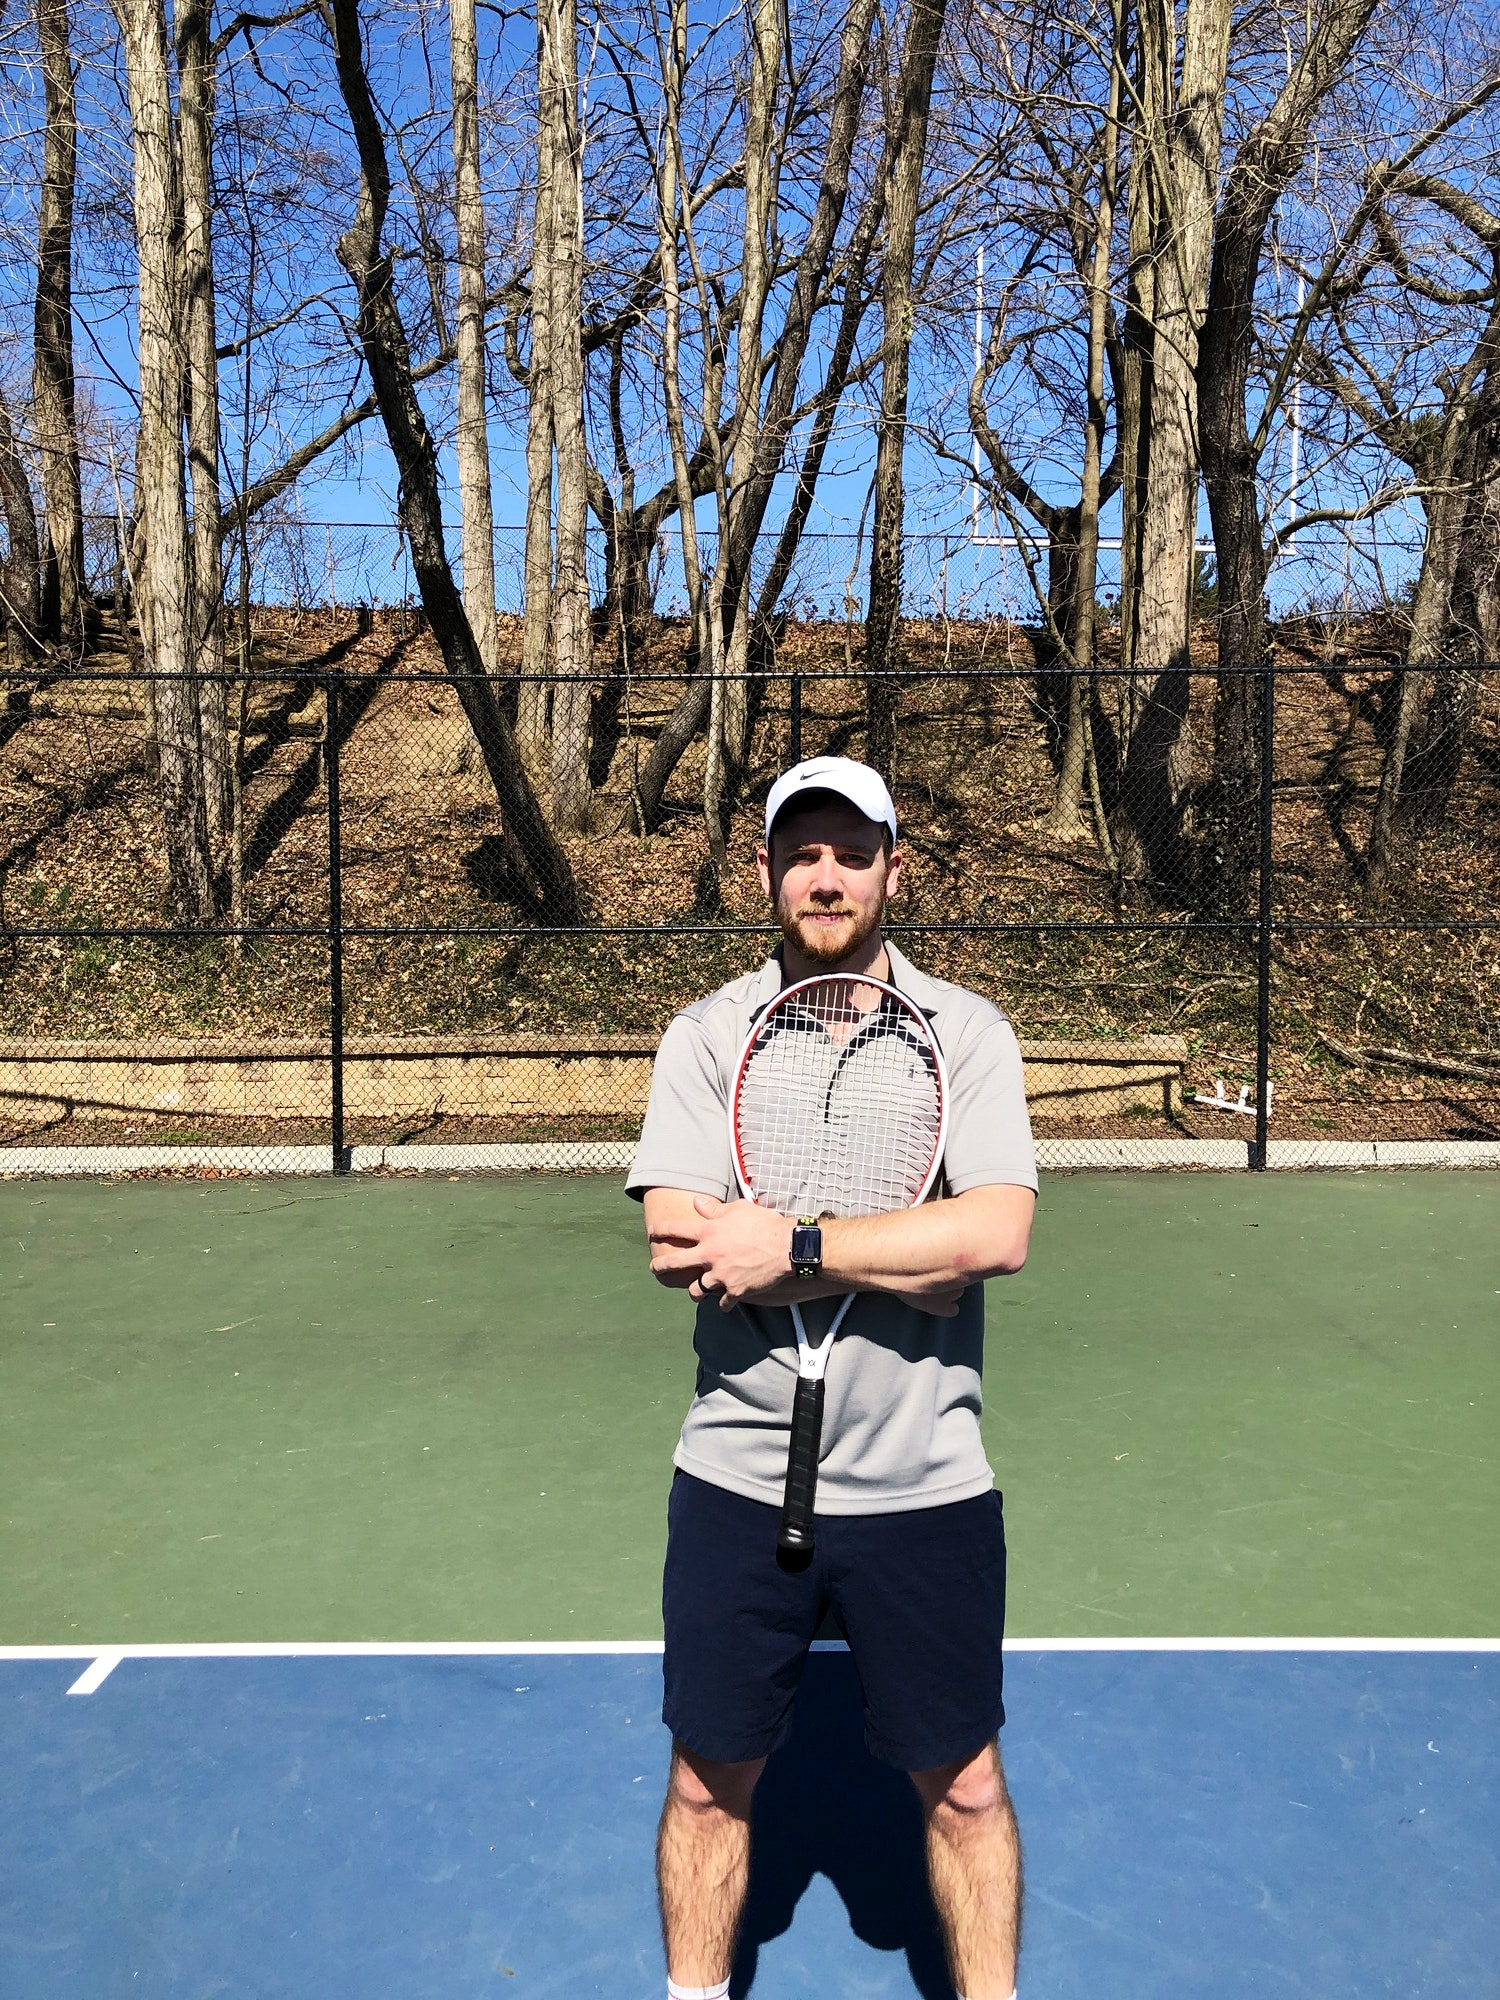 Rob G. teaches tennis lessons in Cherry Hill, NJ